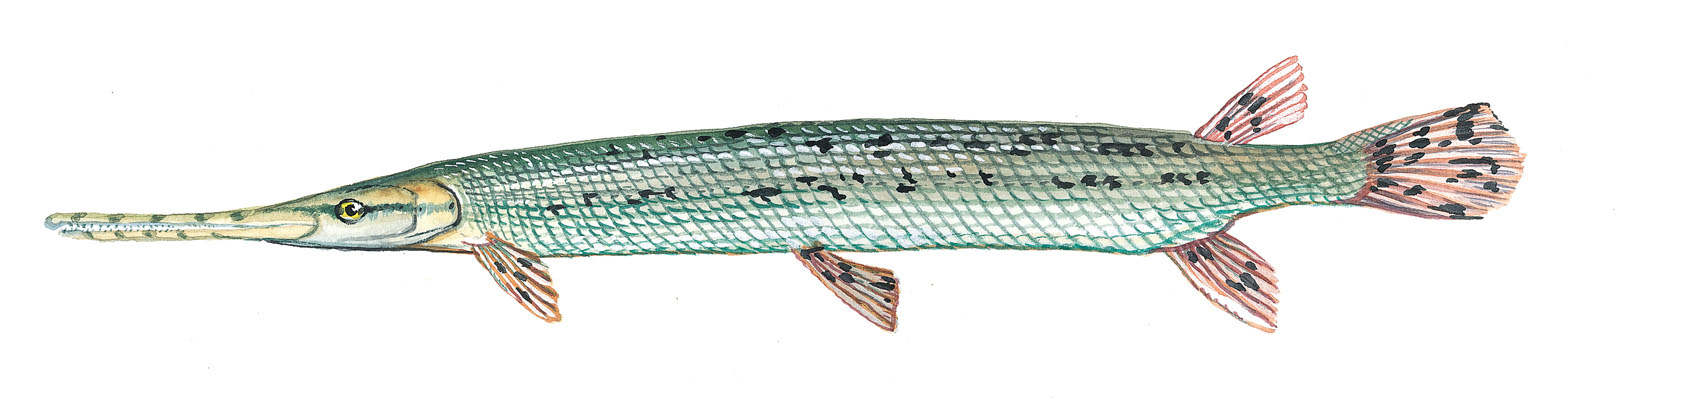 Image gallery long fish for How long is fish good for